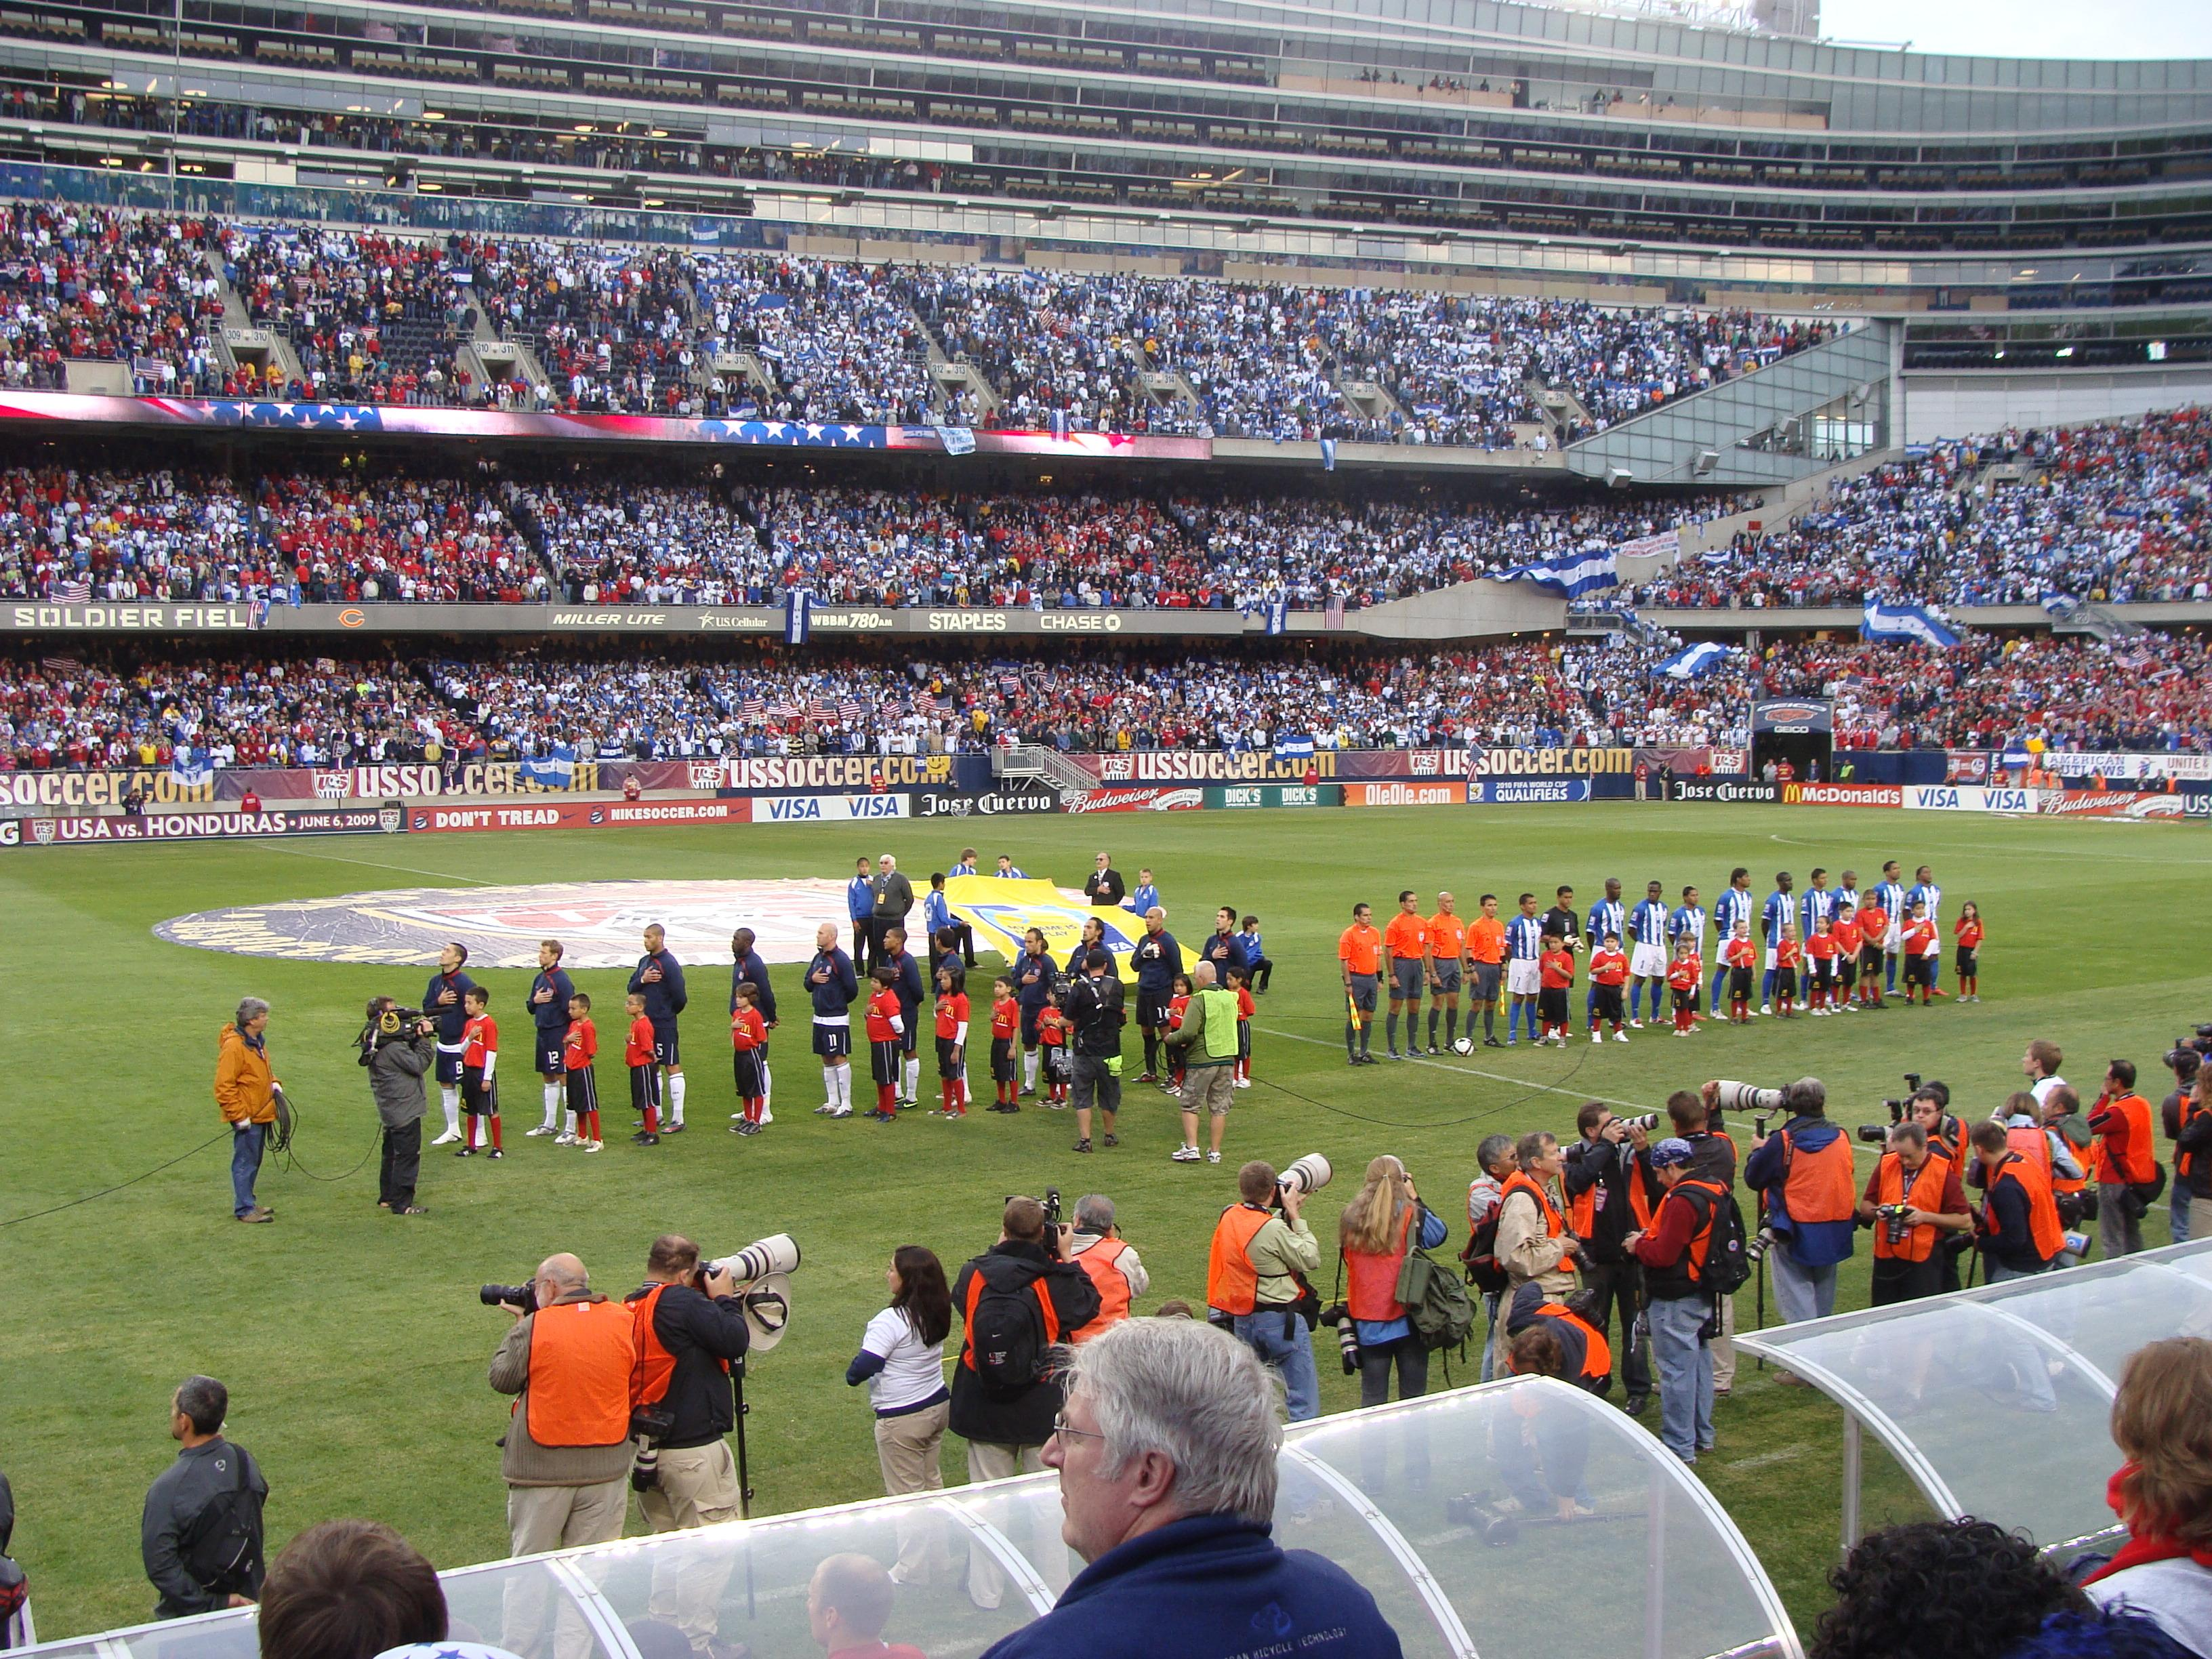 Soldier Field Section 140 Row 4 Seat 7